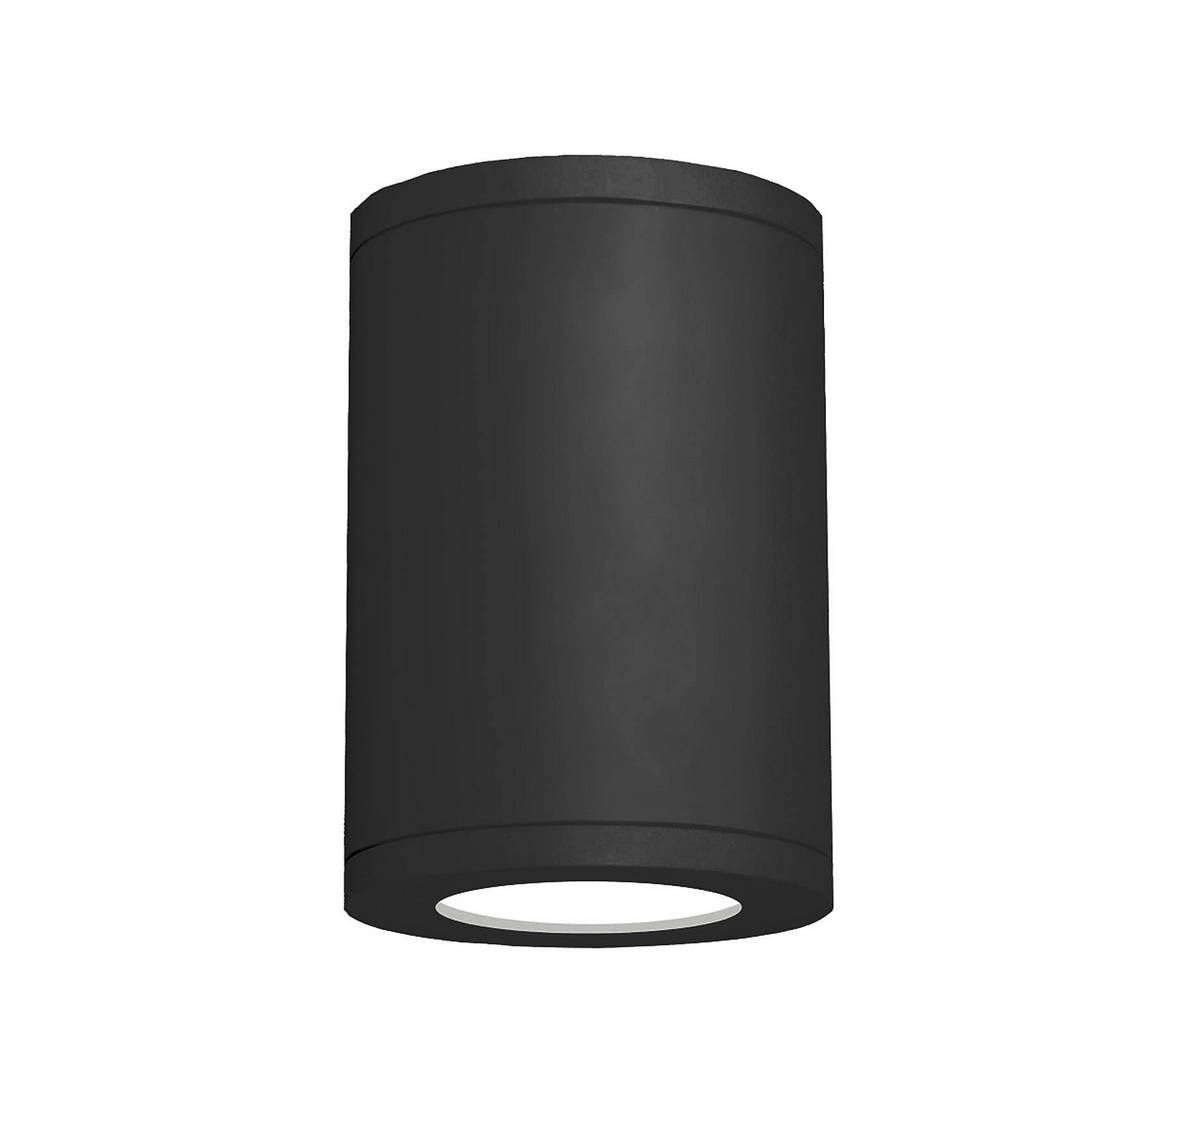 WAC Lighting Tube 7 inch Wet Rated LED Flush Mount 2700K Spot Beam 90CRI in Black #ledtechnology